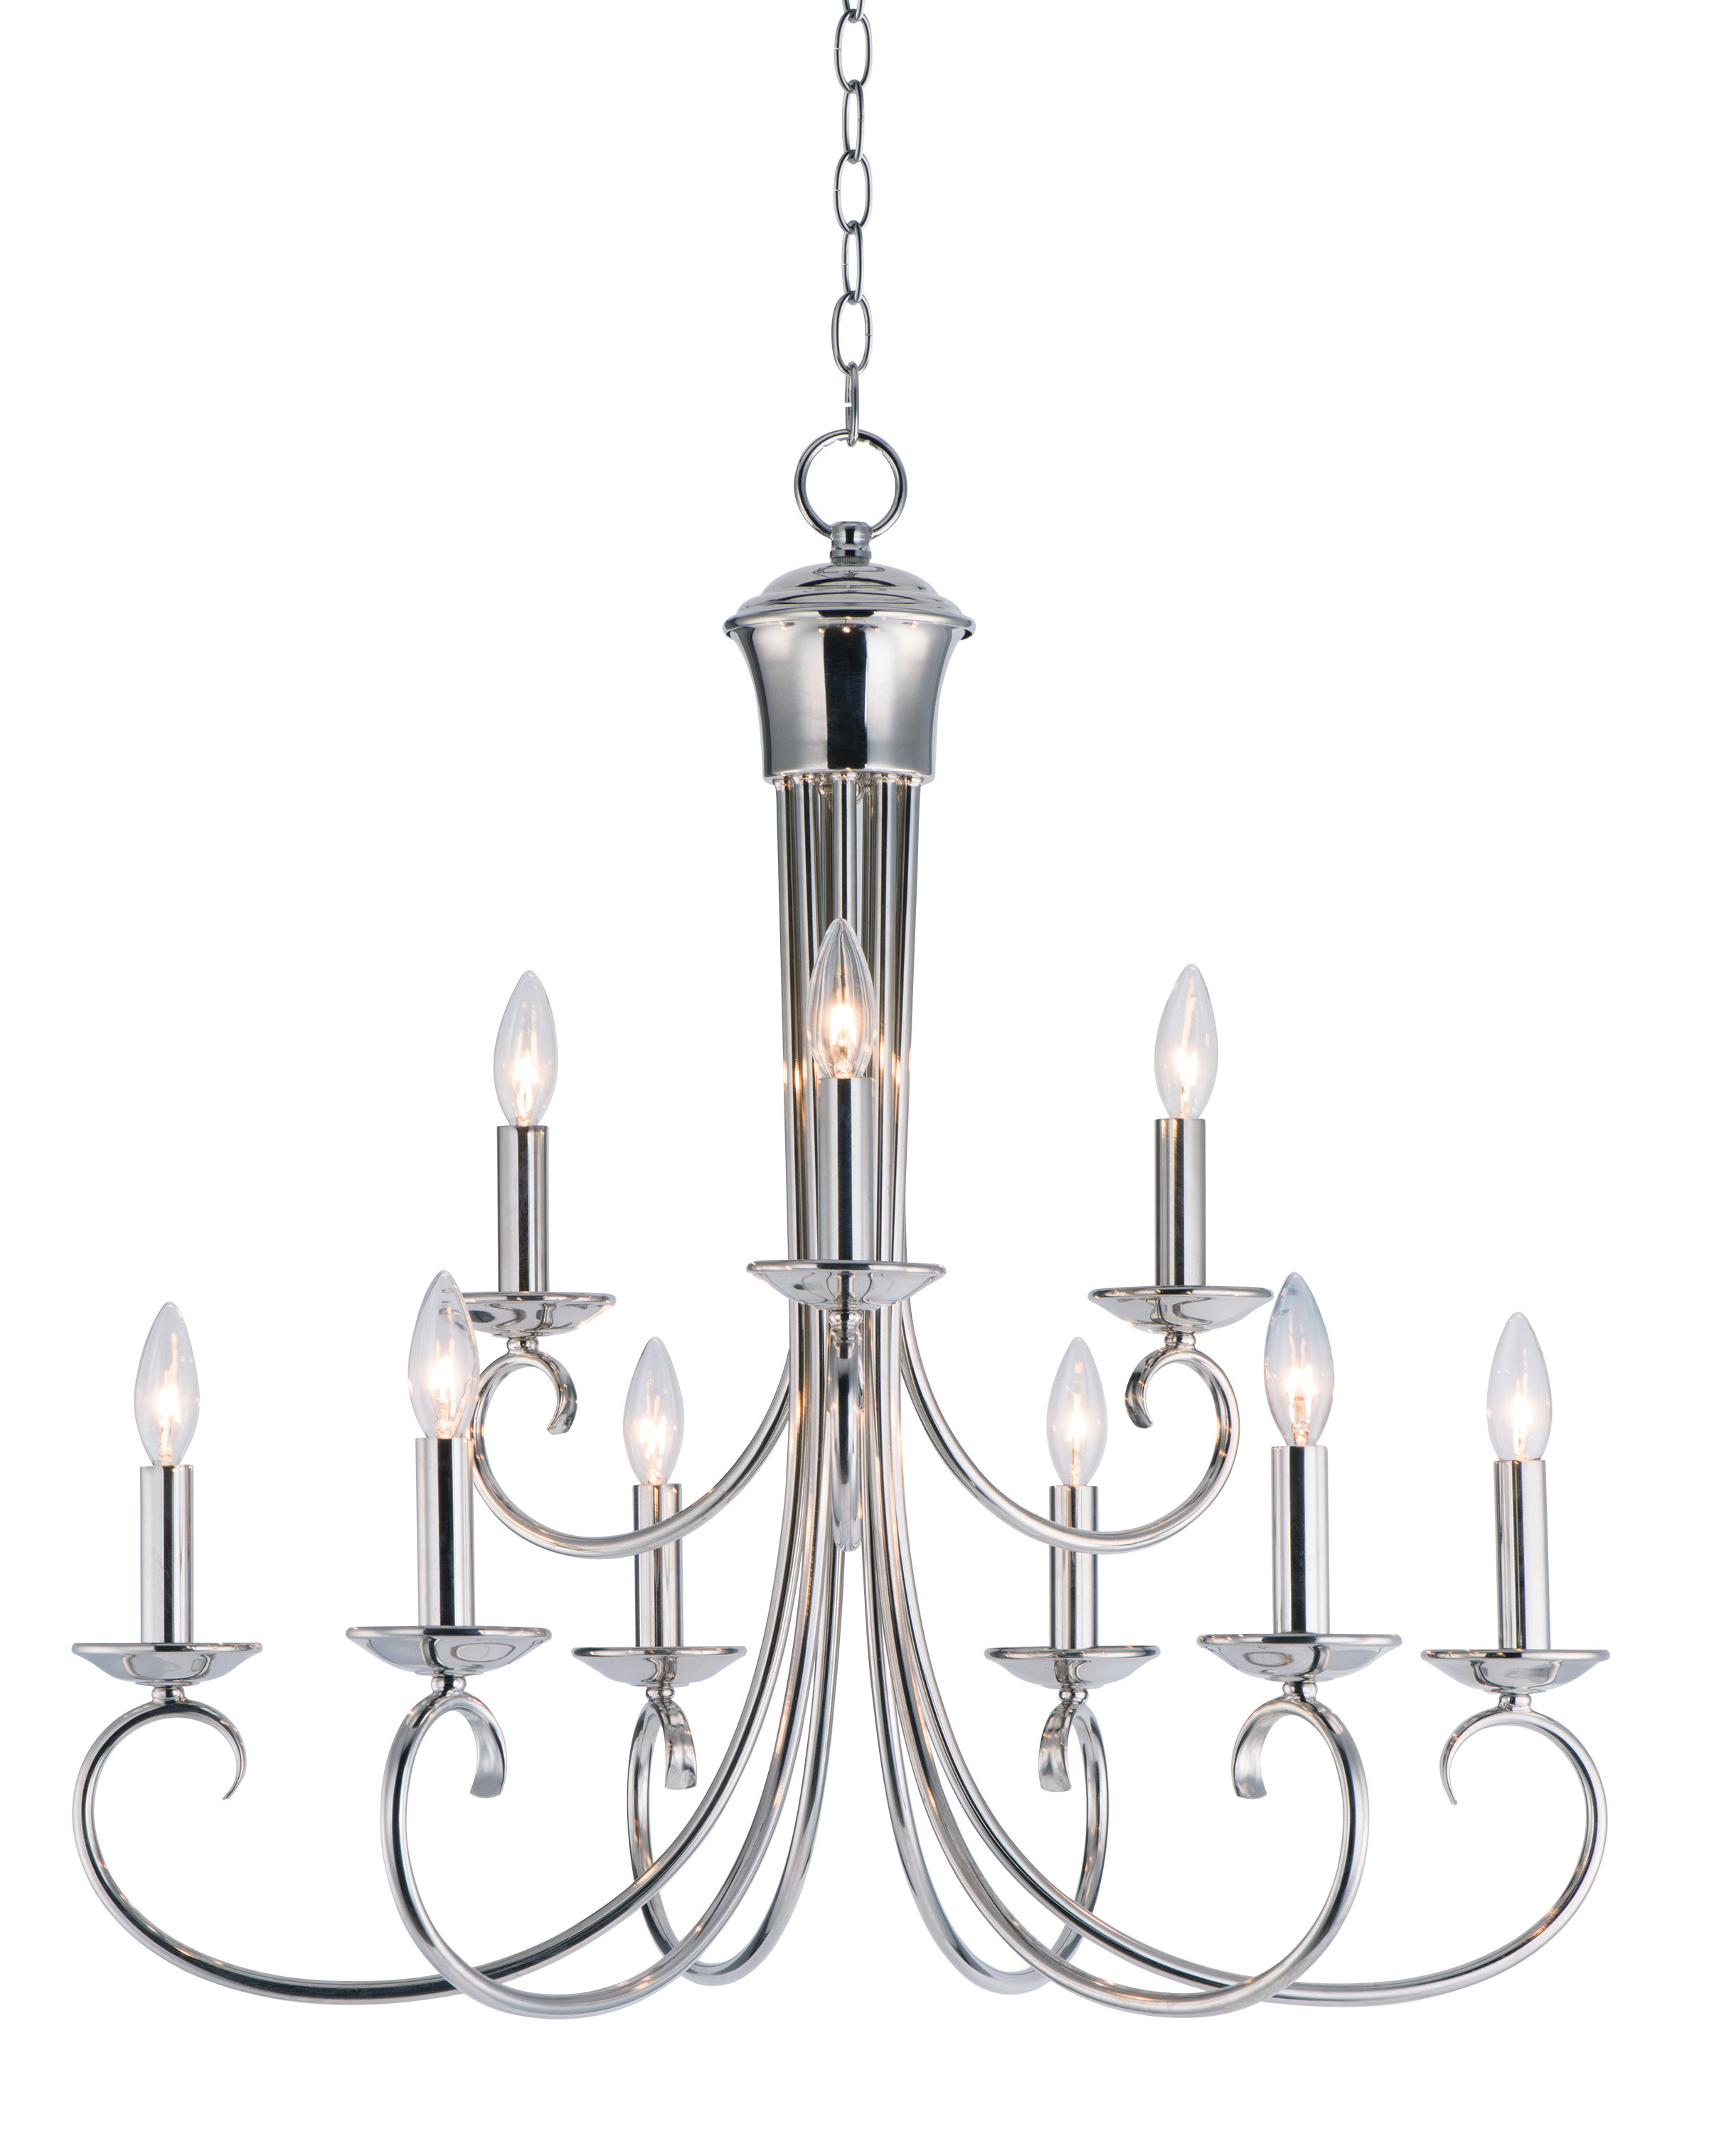 Gaines 9 Light Candle Style Chandeliers Within Most Recent Kenedy 9 Light Candle Style Chandelier (View 11 of 25)